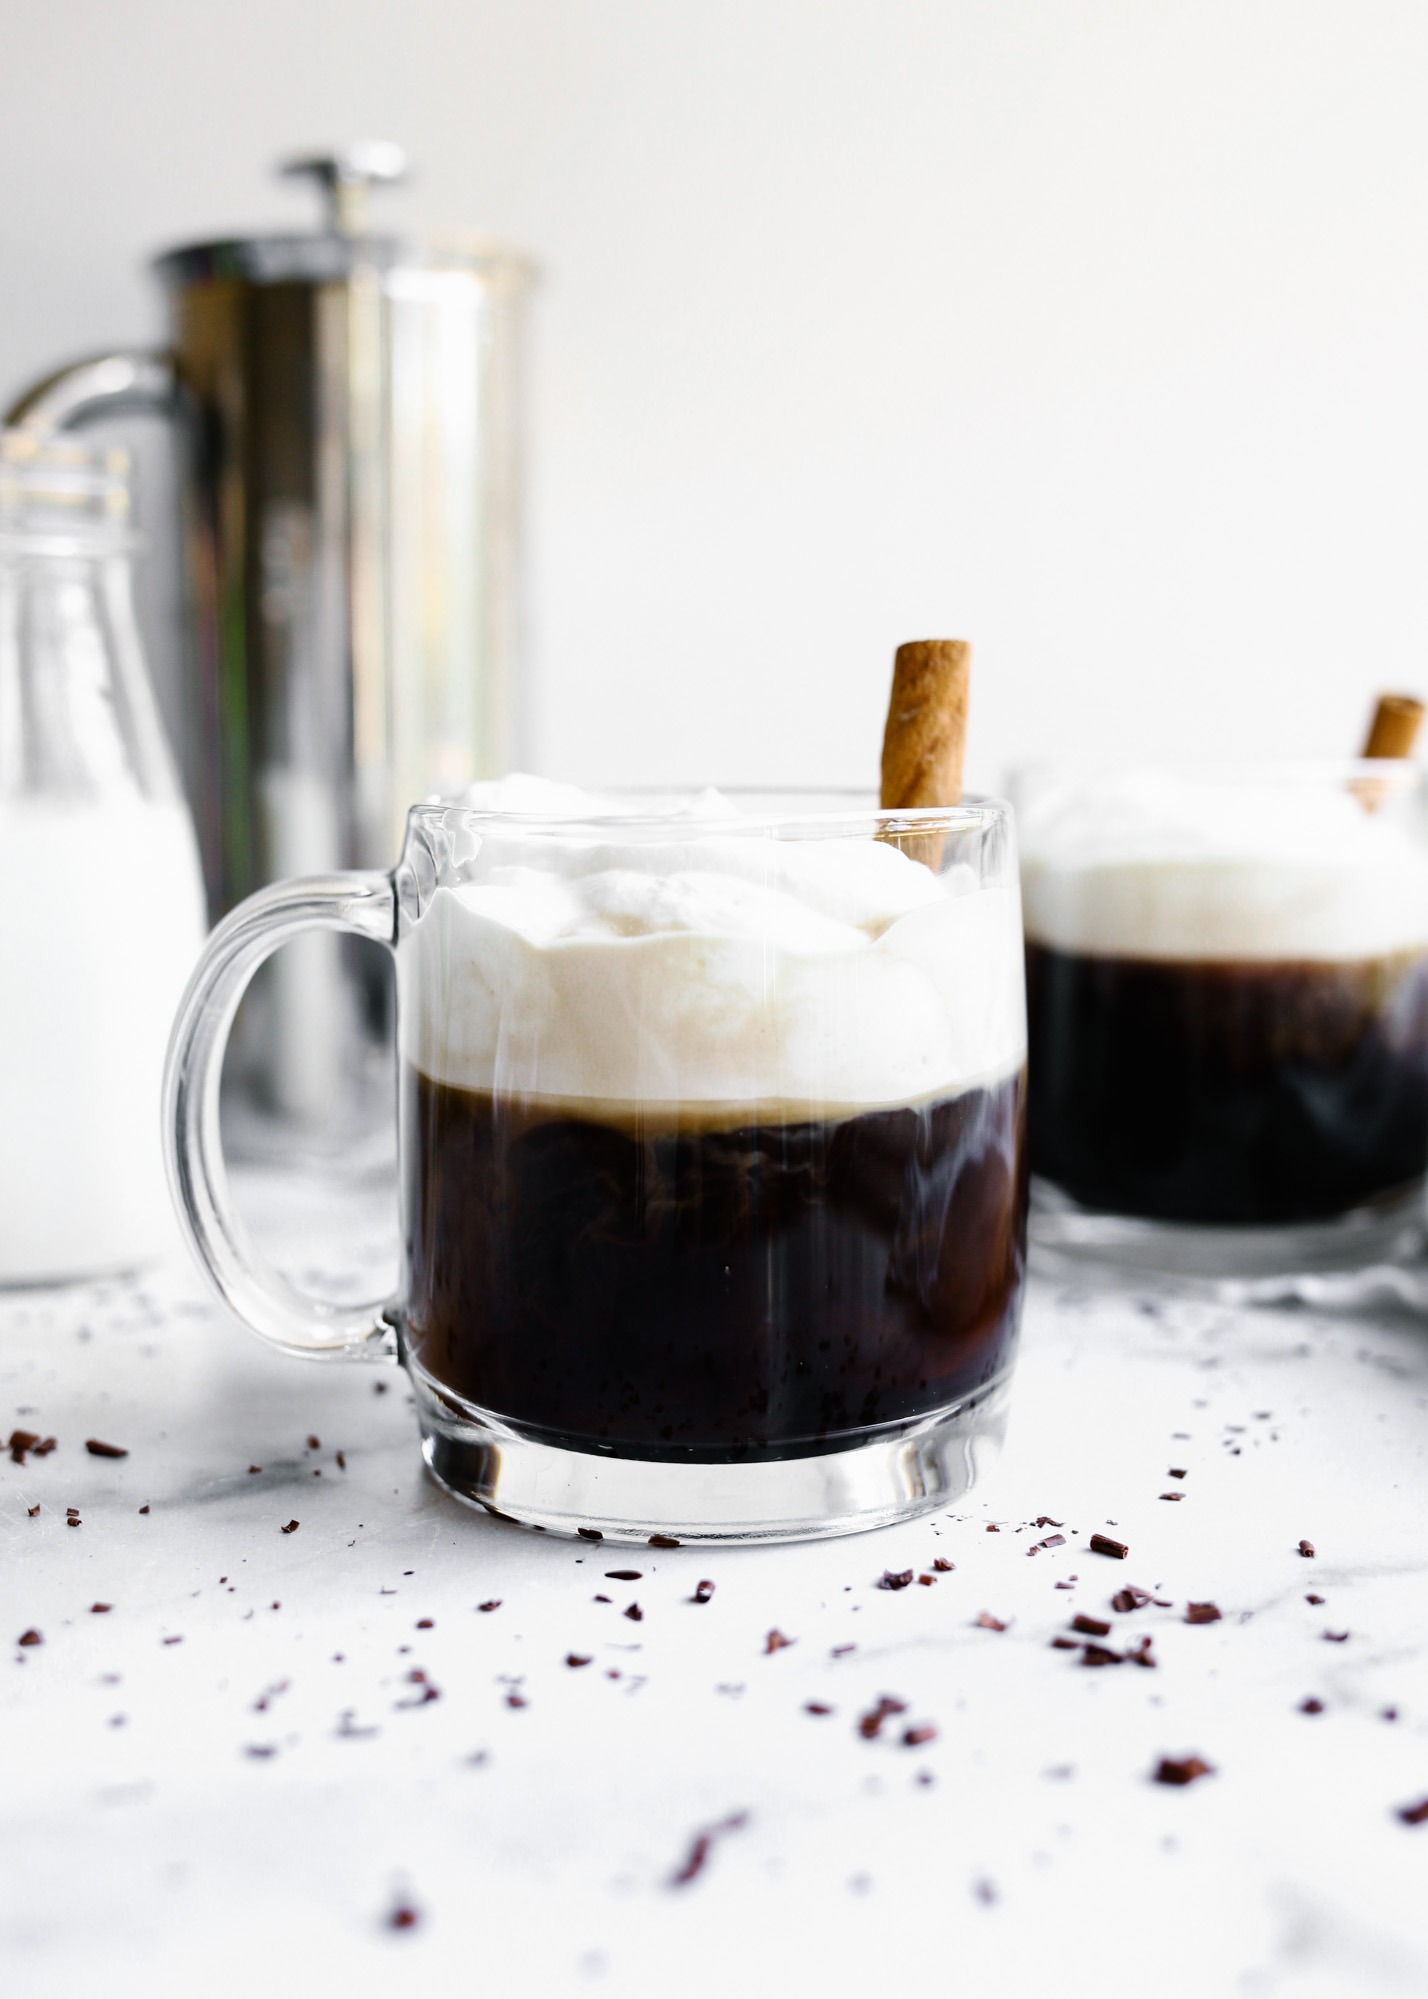 Kentucky Coffee by Wood and Spoon blog. This is a sweetened bourbon coffee topped with whipped cream and served warm as an after dinner beverage. Homemade whipped cream sweetens the coffee and added liquor provides an extra kick to the morning drink. Recipe found on thewoodandspoon.com